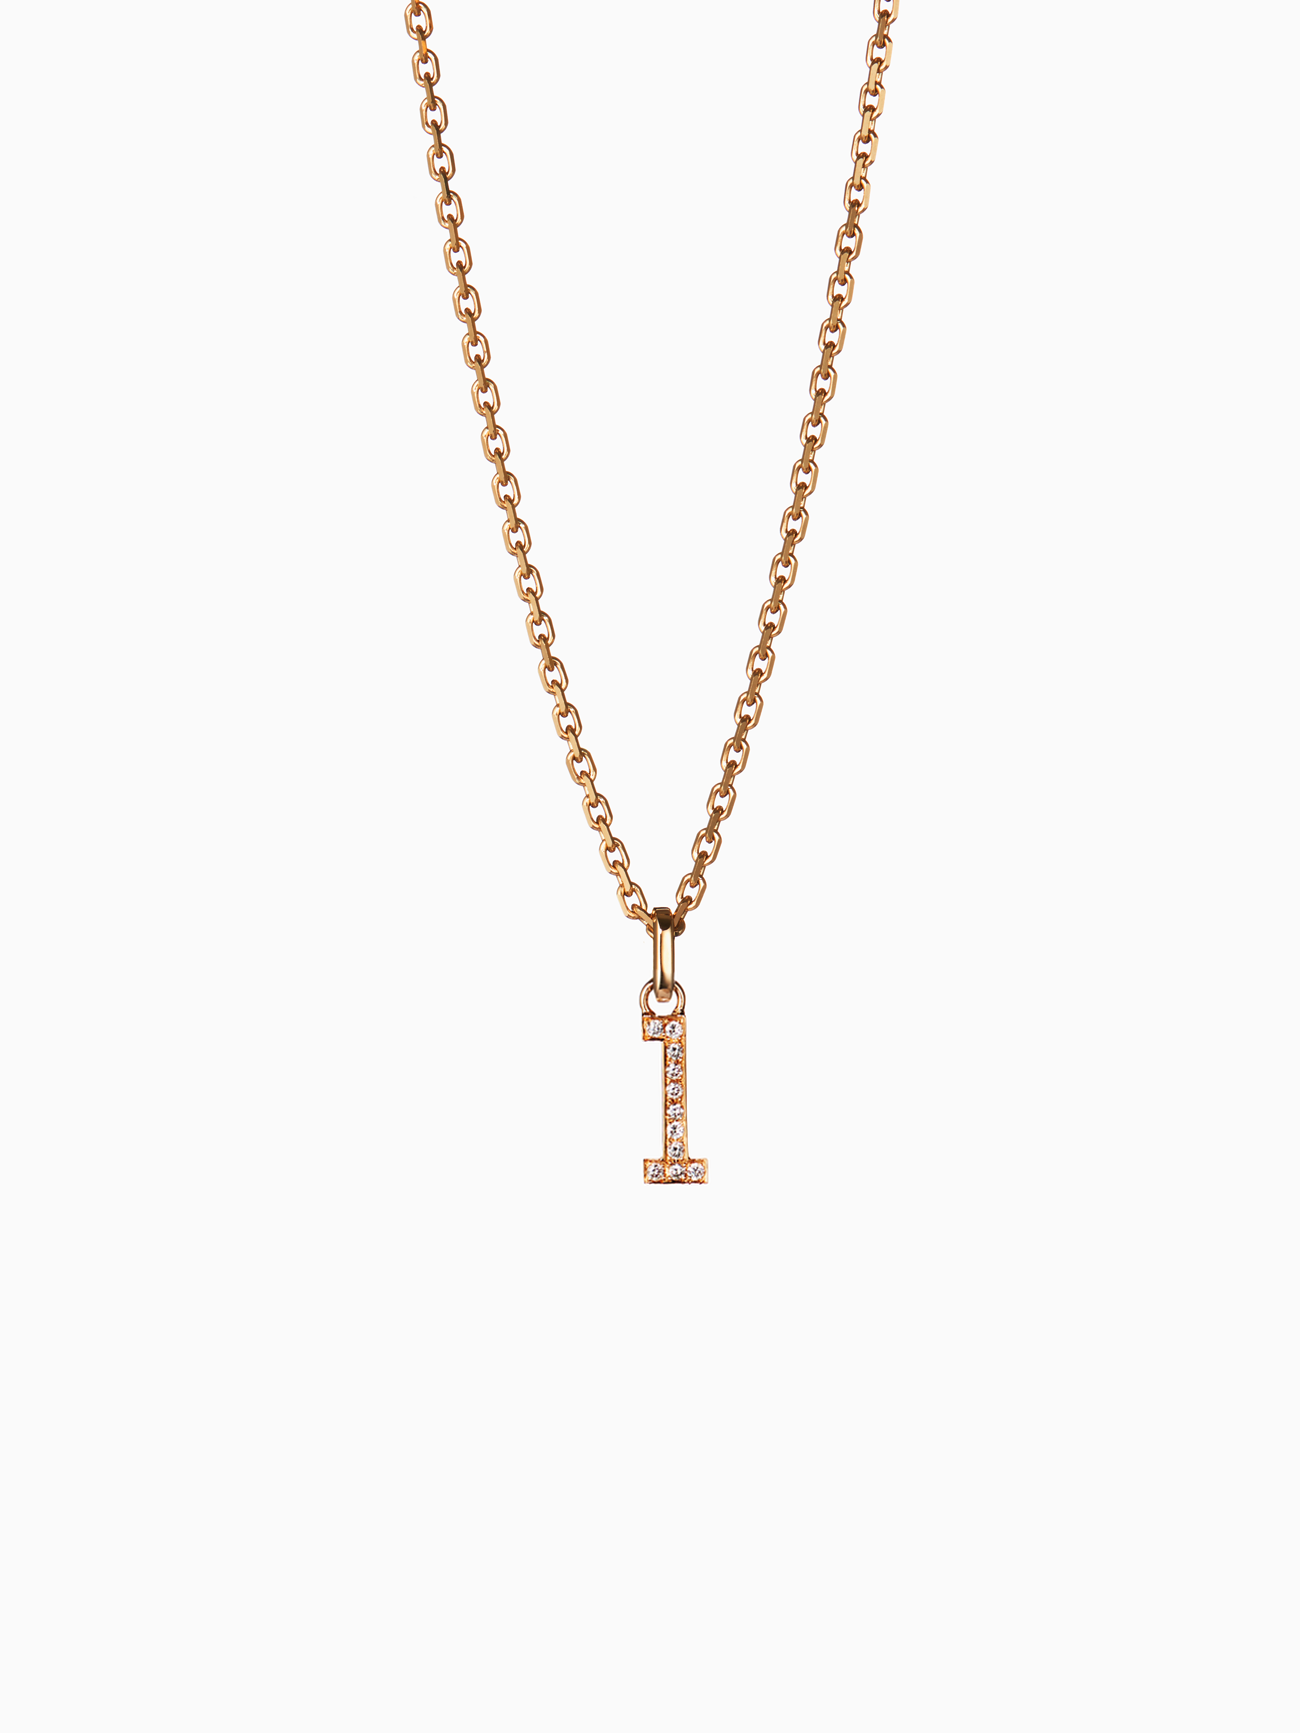 Numeral.1 M/ Pendant / Diamond / Gold